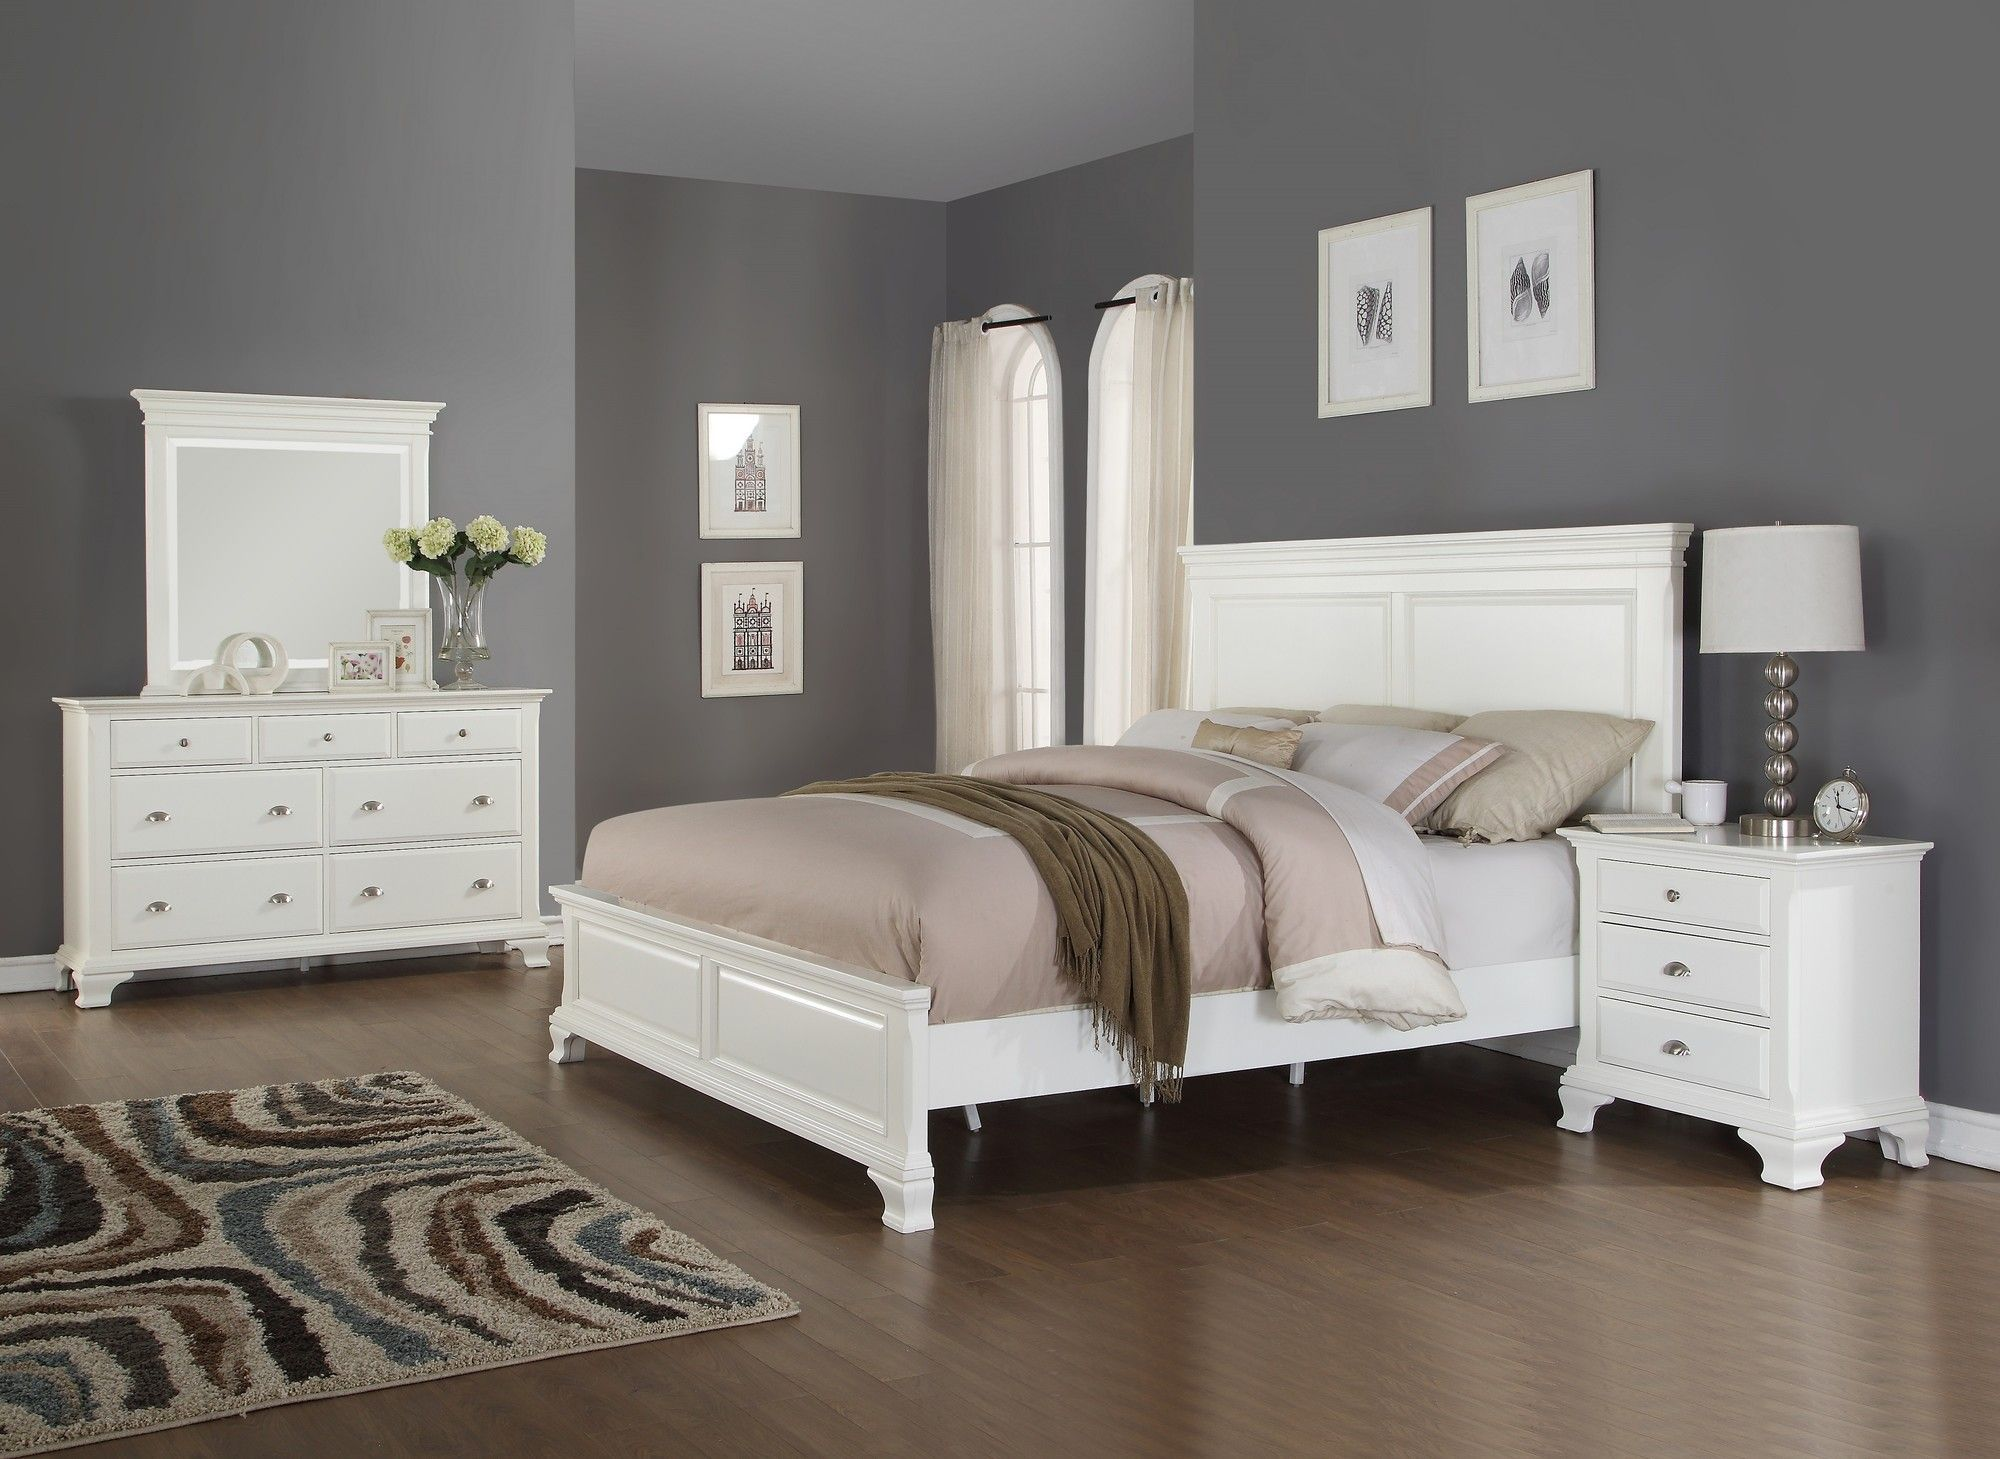 Laveno Panel 4 Piece Bedroom Set Laveno